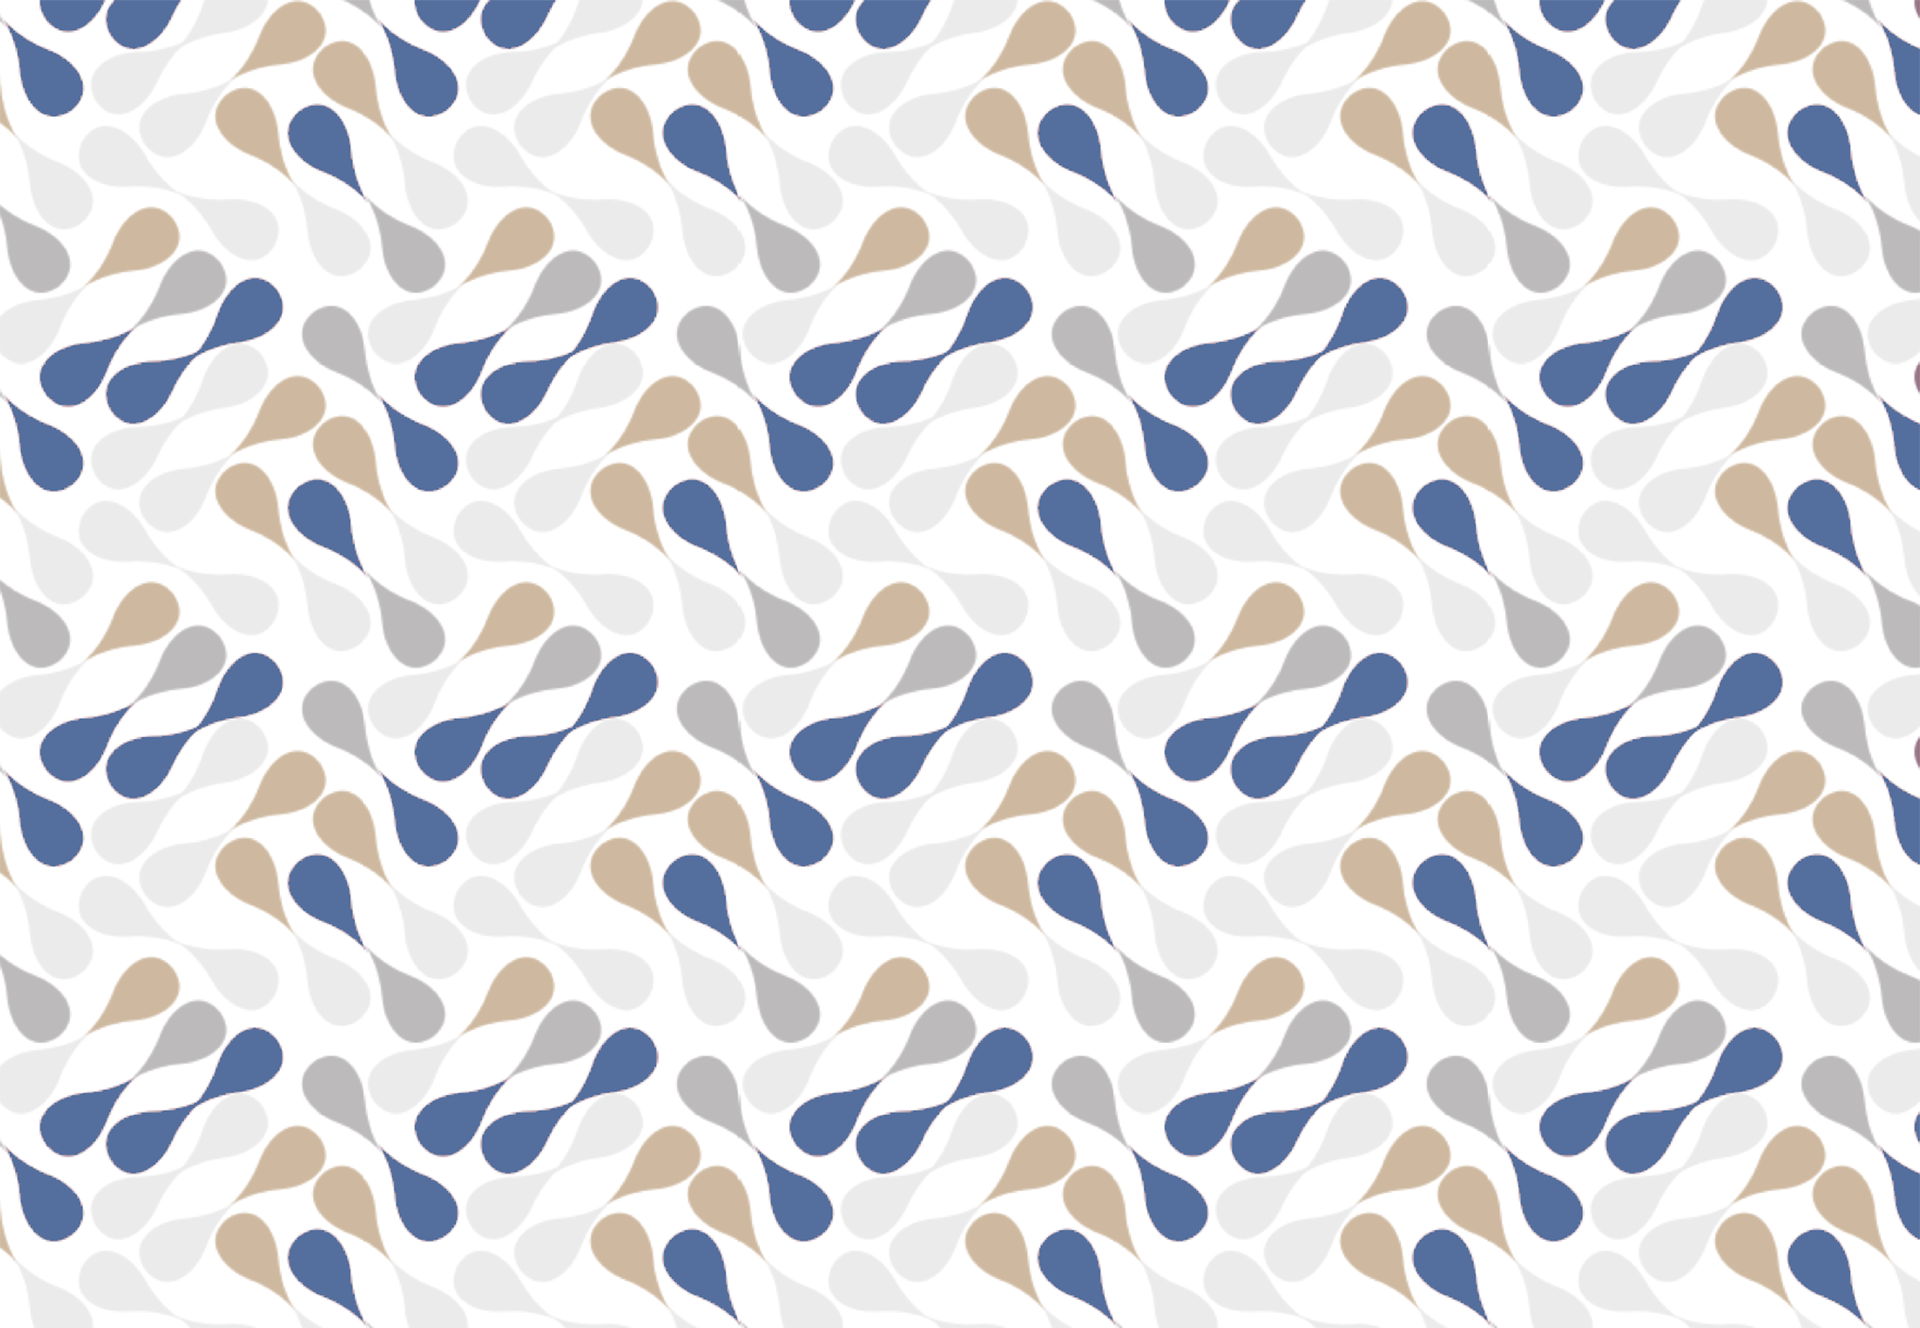 A design that shows rhythm through the repeated use of shape design elements